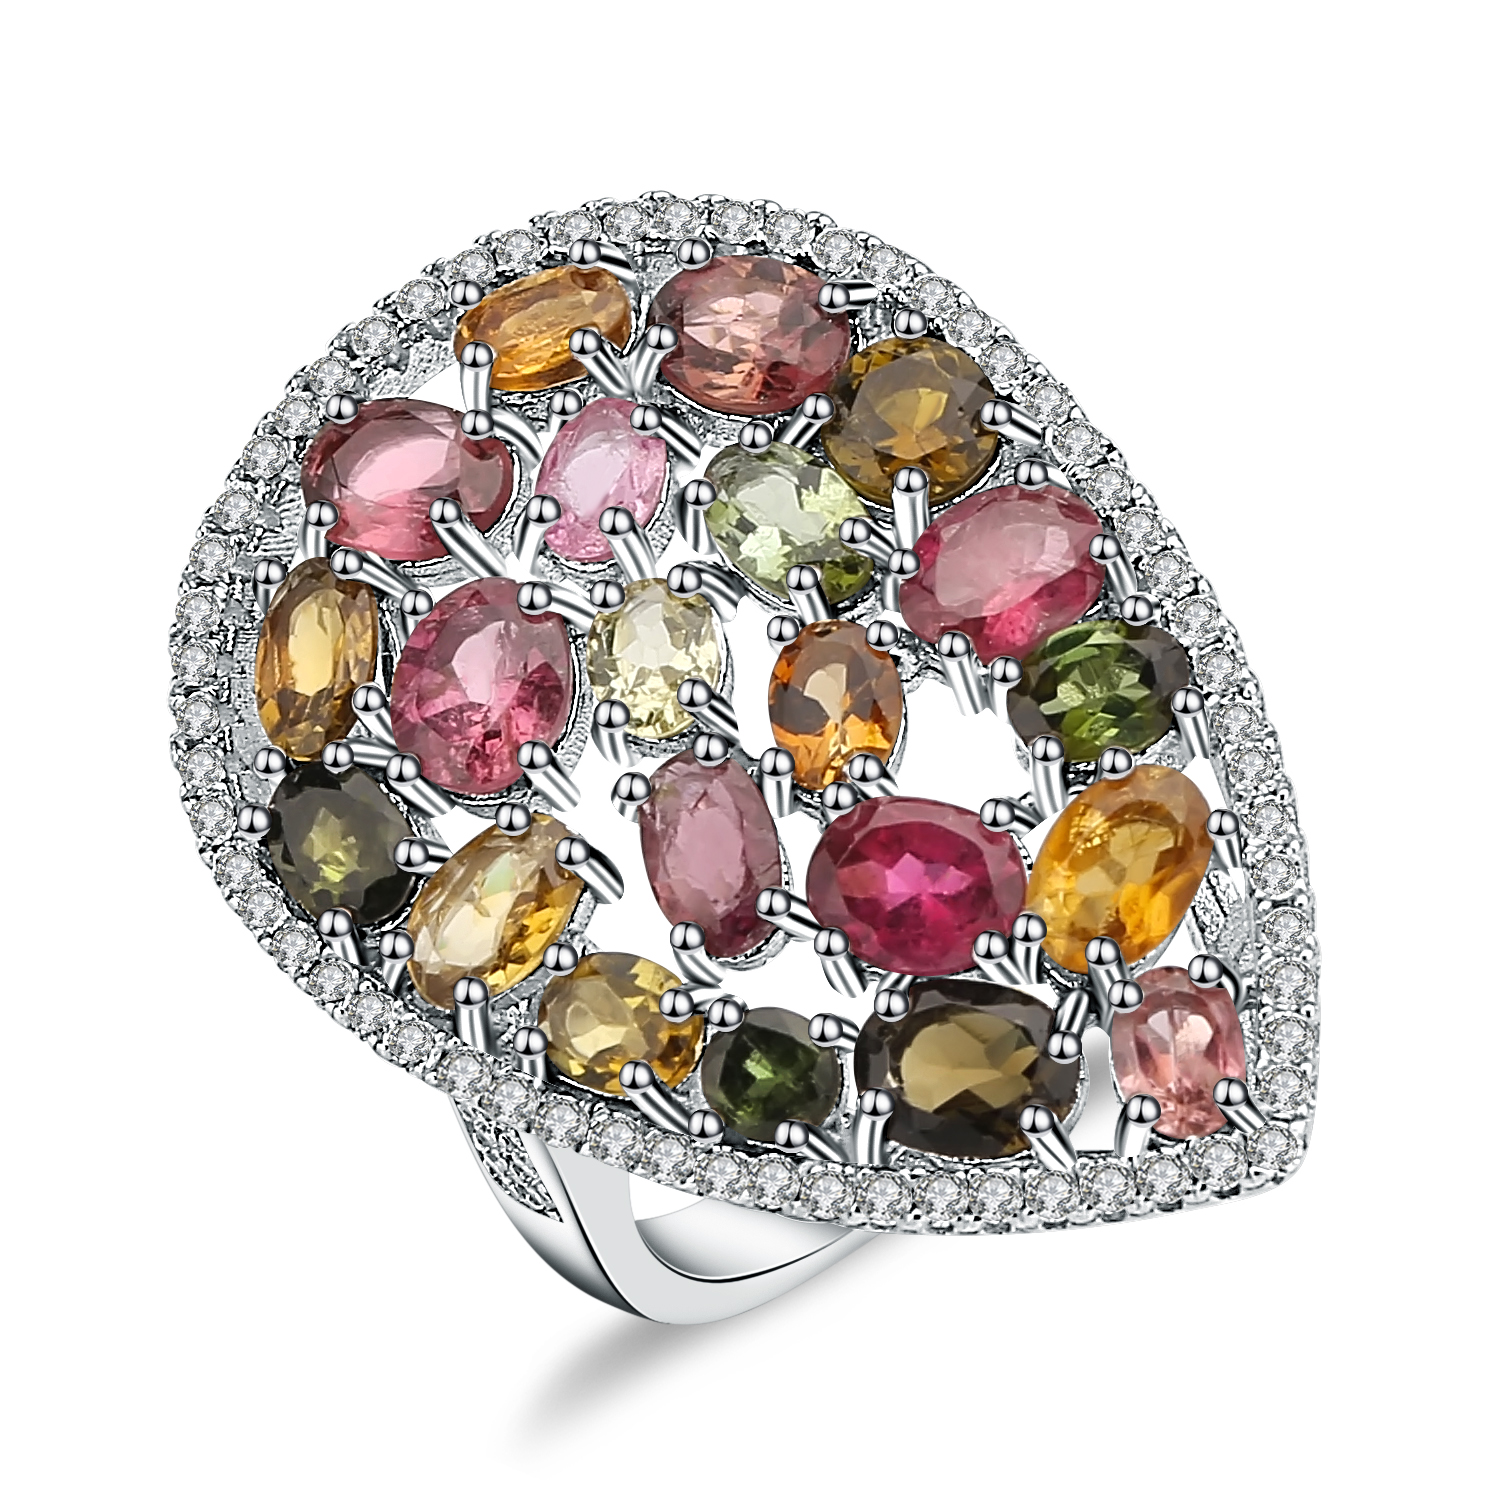 Gem's Ballet 925 Sterling Silver Ring 5.21Ct Colorful Natural Tourmaline Gemstone Cocktail Rings For Women Fine Jewelry